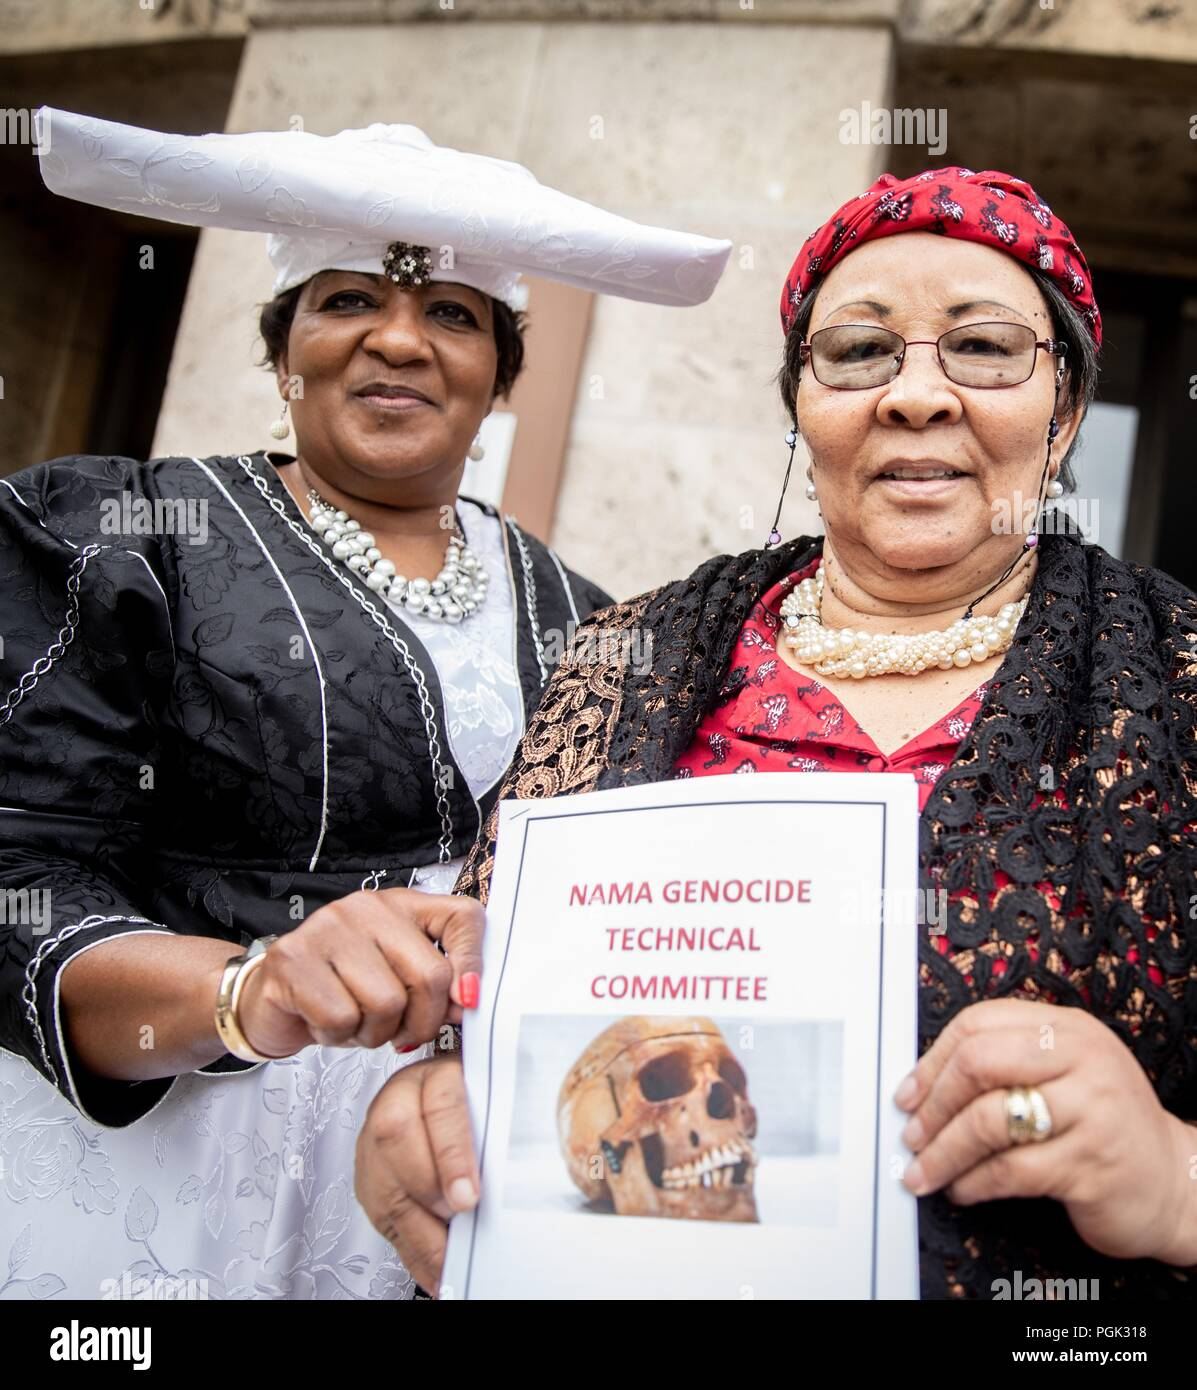 27 August 2018, Berlin, Germany: A delegation of Ovaherero and Nama from Namibia with Esther Utjiua Muinjangue (l), Chairwoman of the Ovaherero Genocide Foundation in Namibia, and Ida Hoffmann (r), Member of Parliament and Chairwoman of the Nama Genocide Technical Committee in Namibia, are standing before the Senate Administration for Justice, Consumer Protection and Anti-Discrimination after a meeting and a press conference with Senator Behrendt (not shown). This week, stolen remains of Herero and Nama murdered in the 1904-08 genocide are to be returned to a government delegation from Namibia - Stock Image